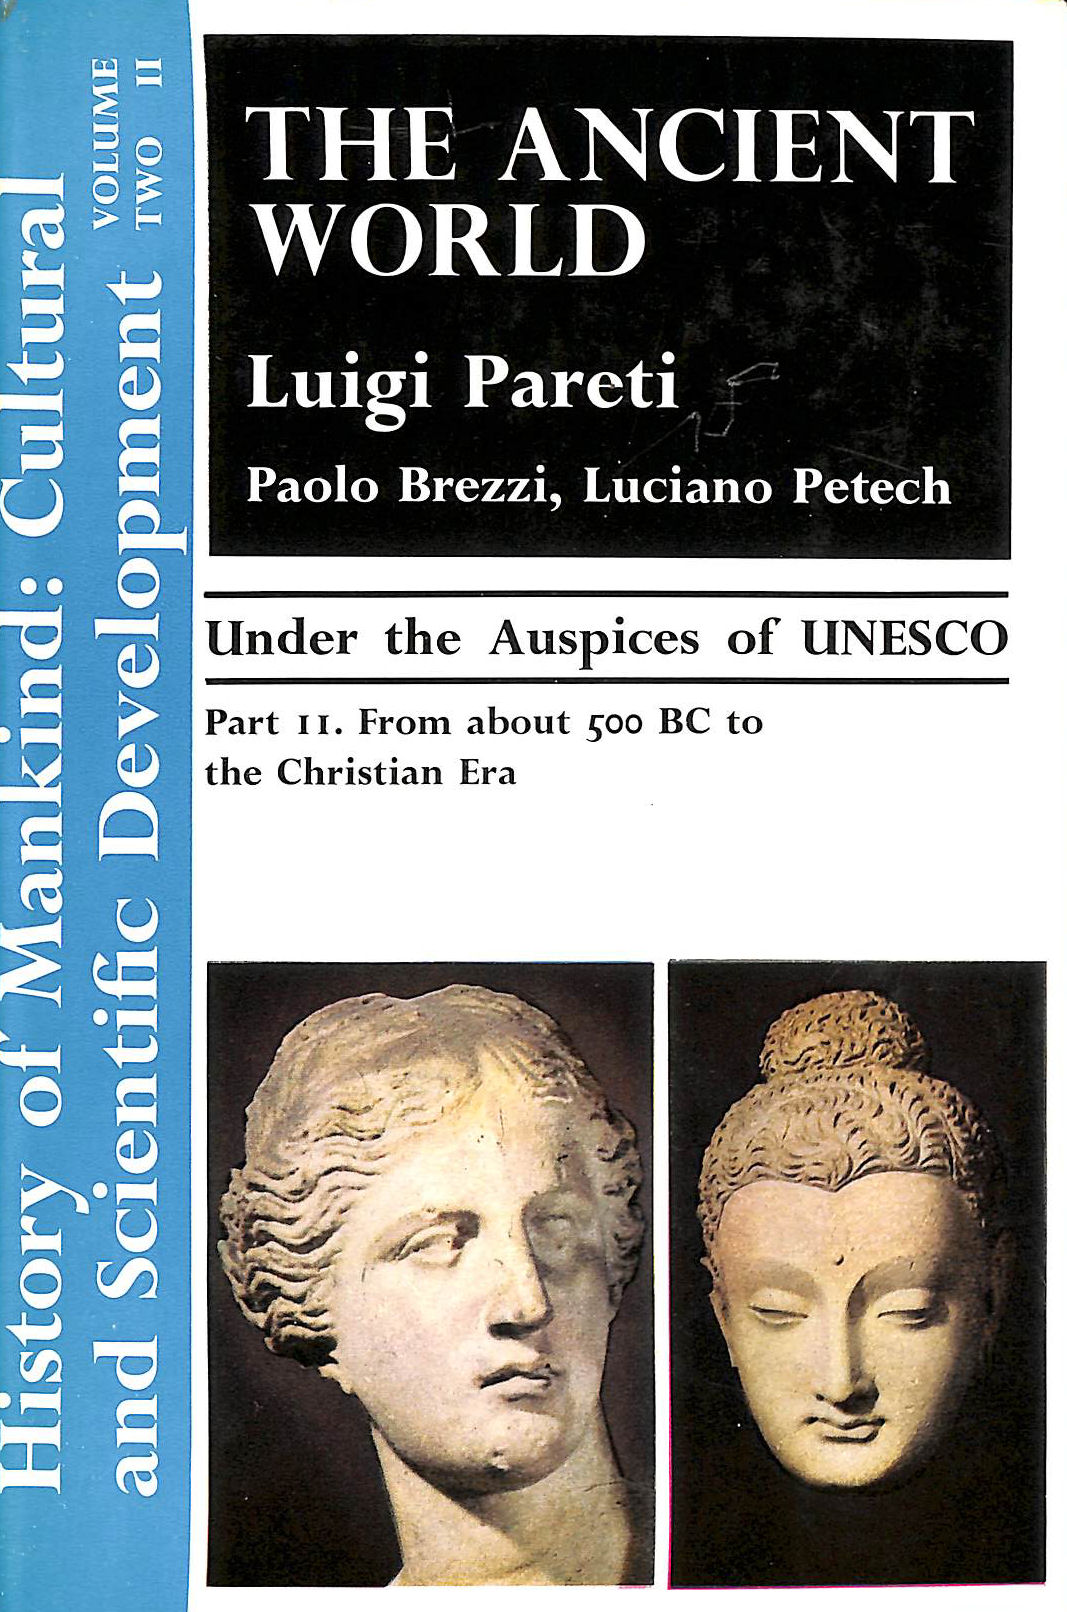 Image for The Ancient World: Vol 2 Part II, From 500BC t the Christian Era